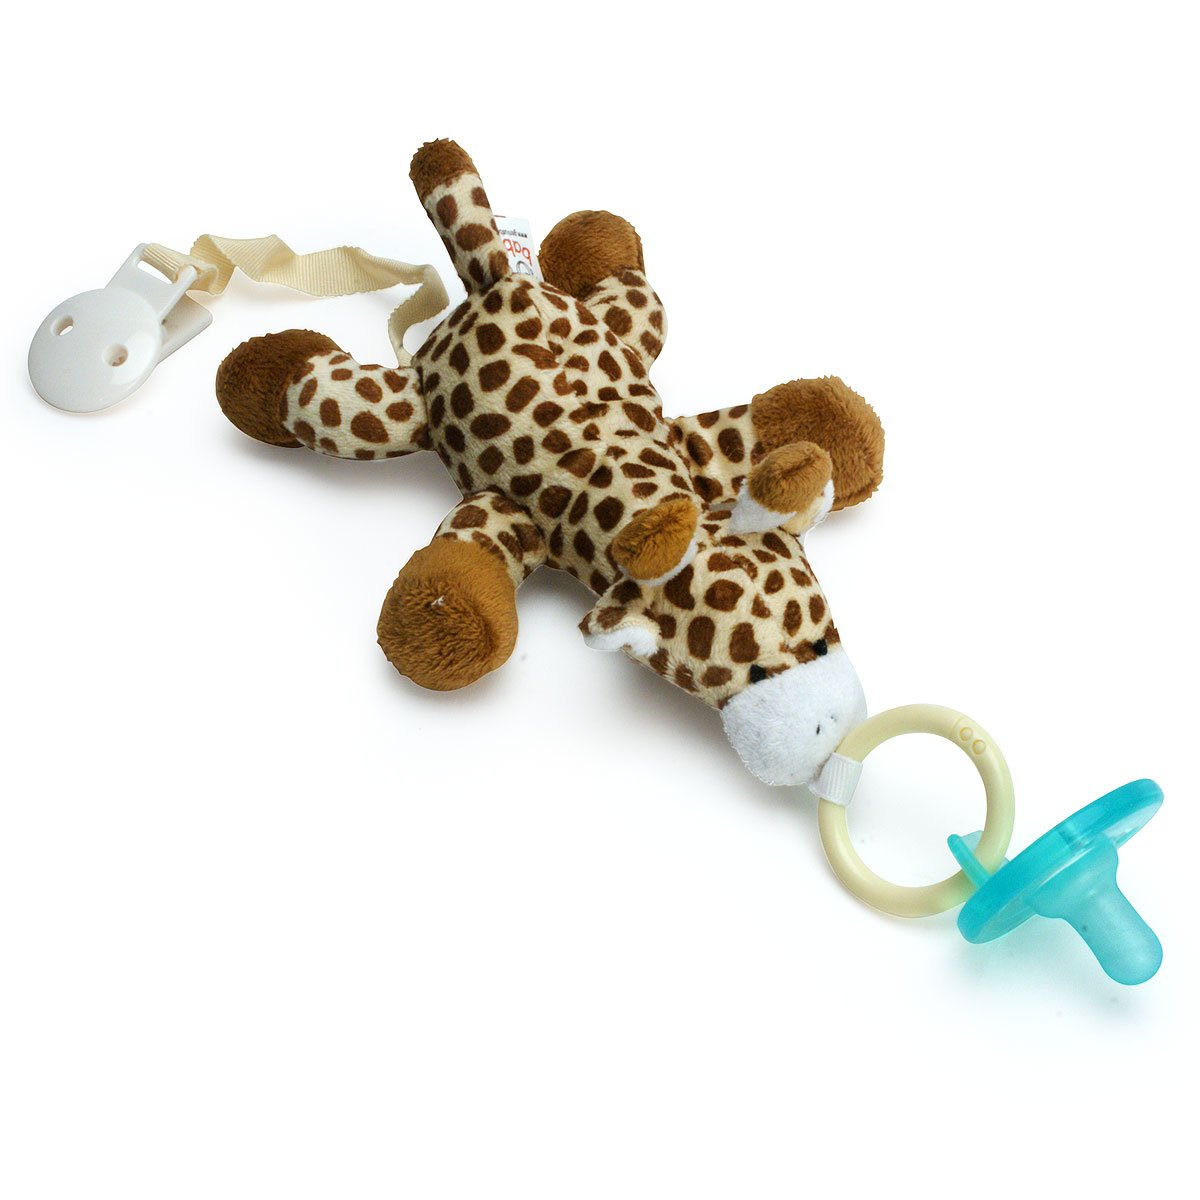 Paci-Buddy Giraffe - Plush Pacifier Holder & Clip by Genius Baby Toys   B00J1B5JY6